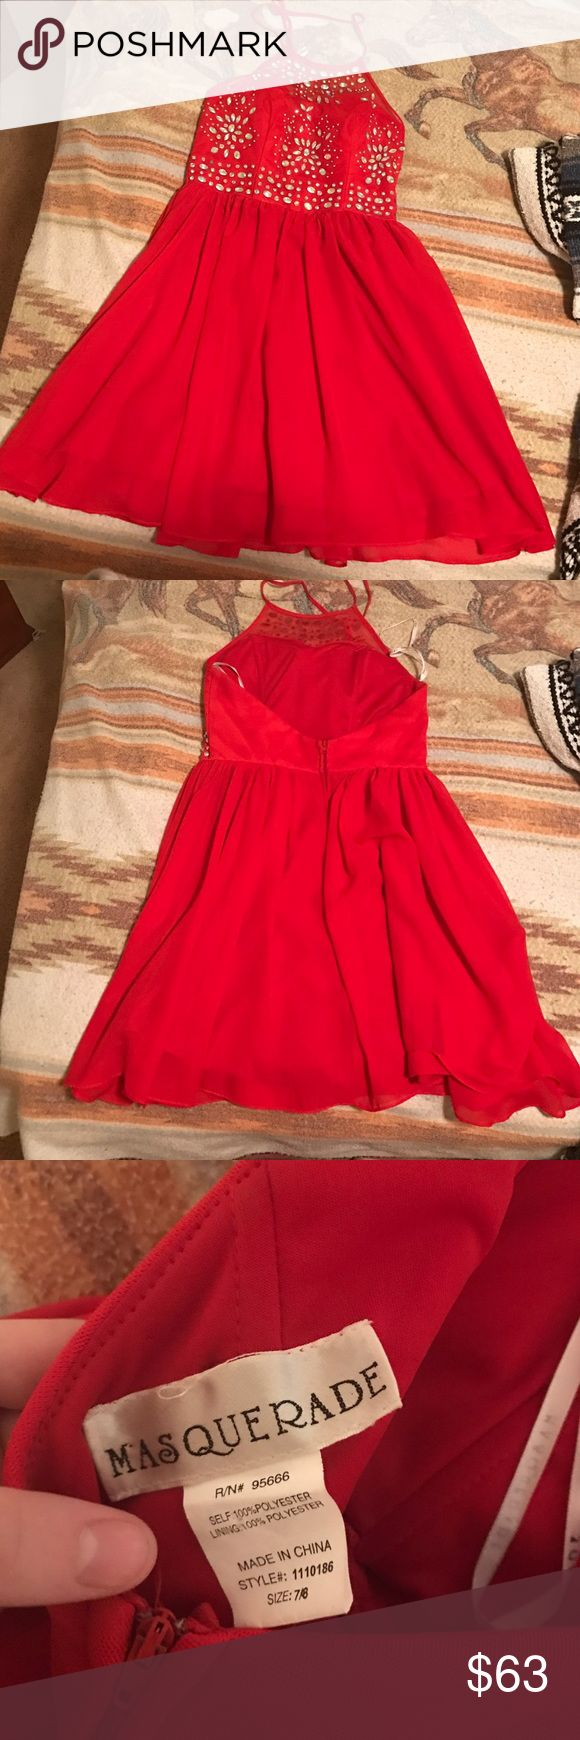 bought it for hoco, no longer need it Beautiful dress comes right above the knee. Has a halter sequin top that zips in the back with a flowy skirt. Size 7/8 in a cherry red. Only worn for a couple of hours. In excellent condition! Price negotiable :) Dresses